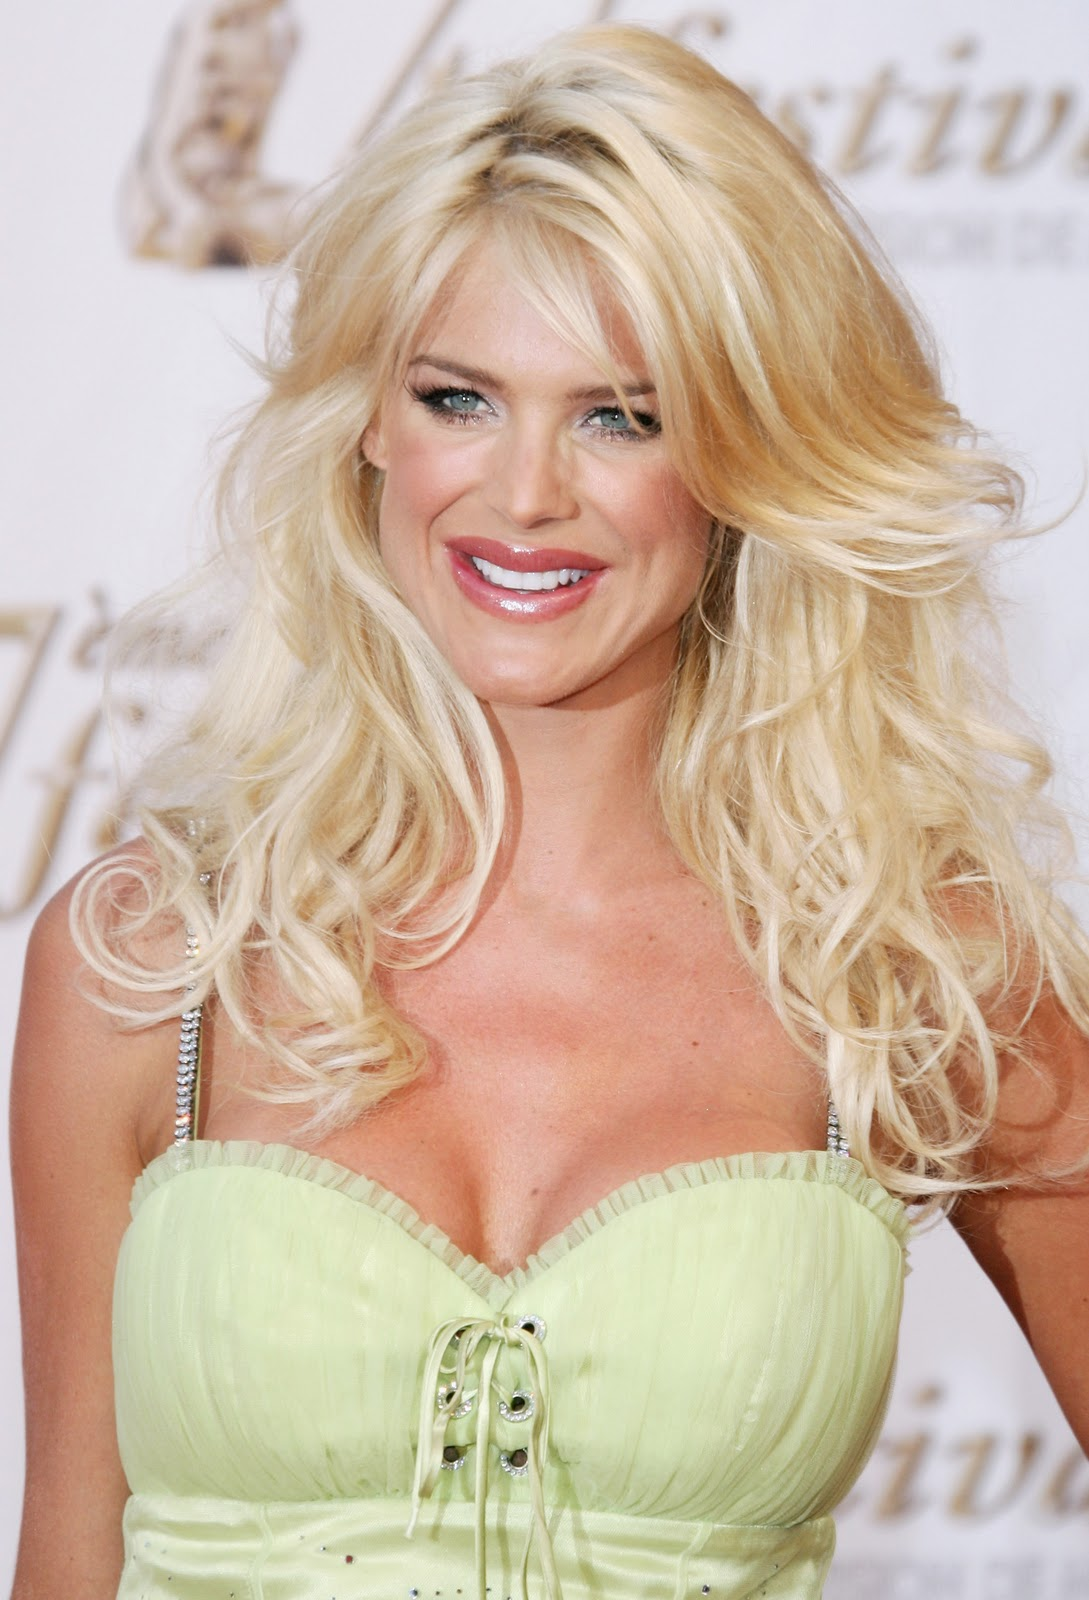 Cleavage Victoria Silvstedt nudes (24 foto and video), Topless, Leaked, Selfie, cleavage 2015